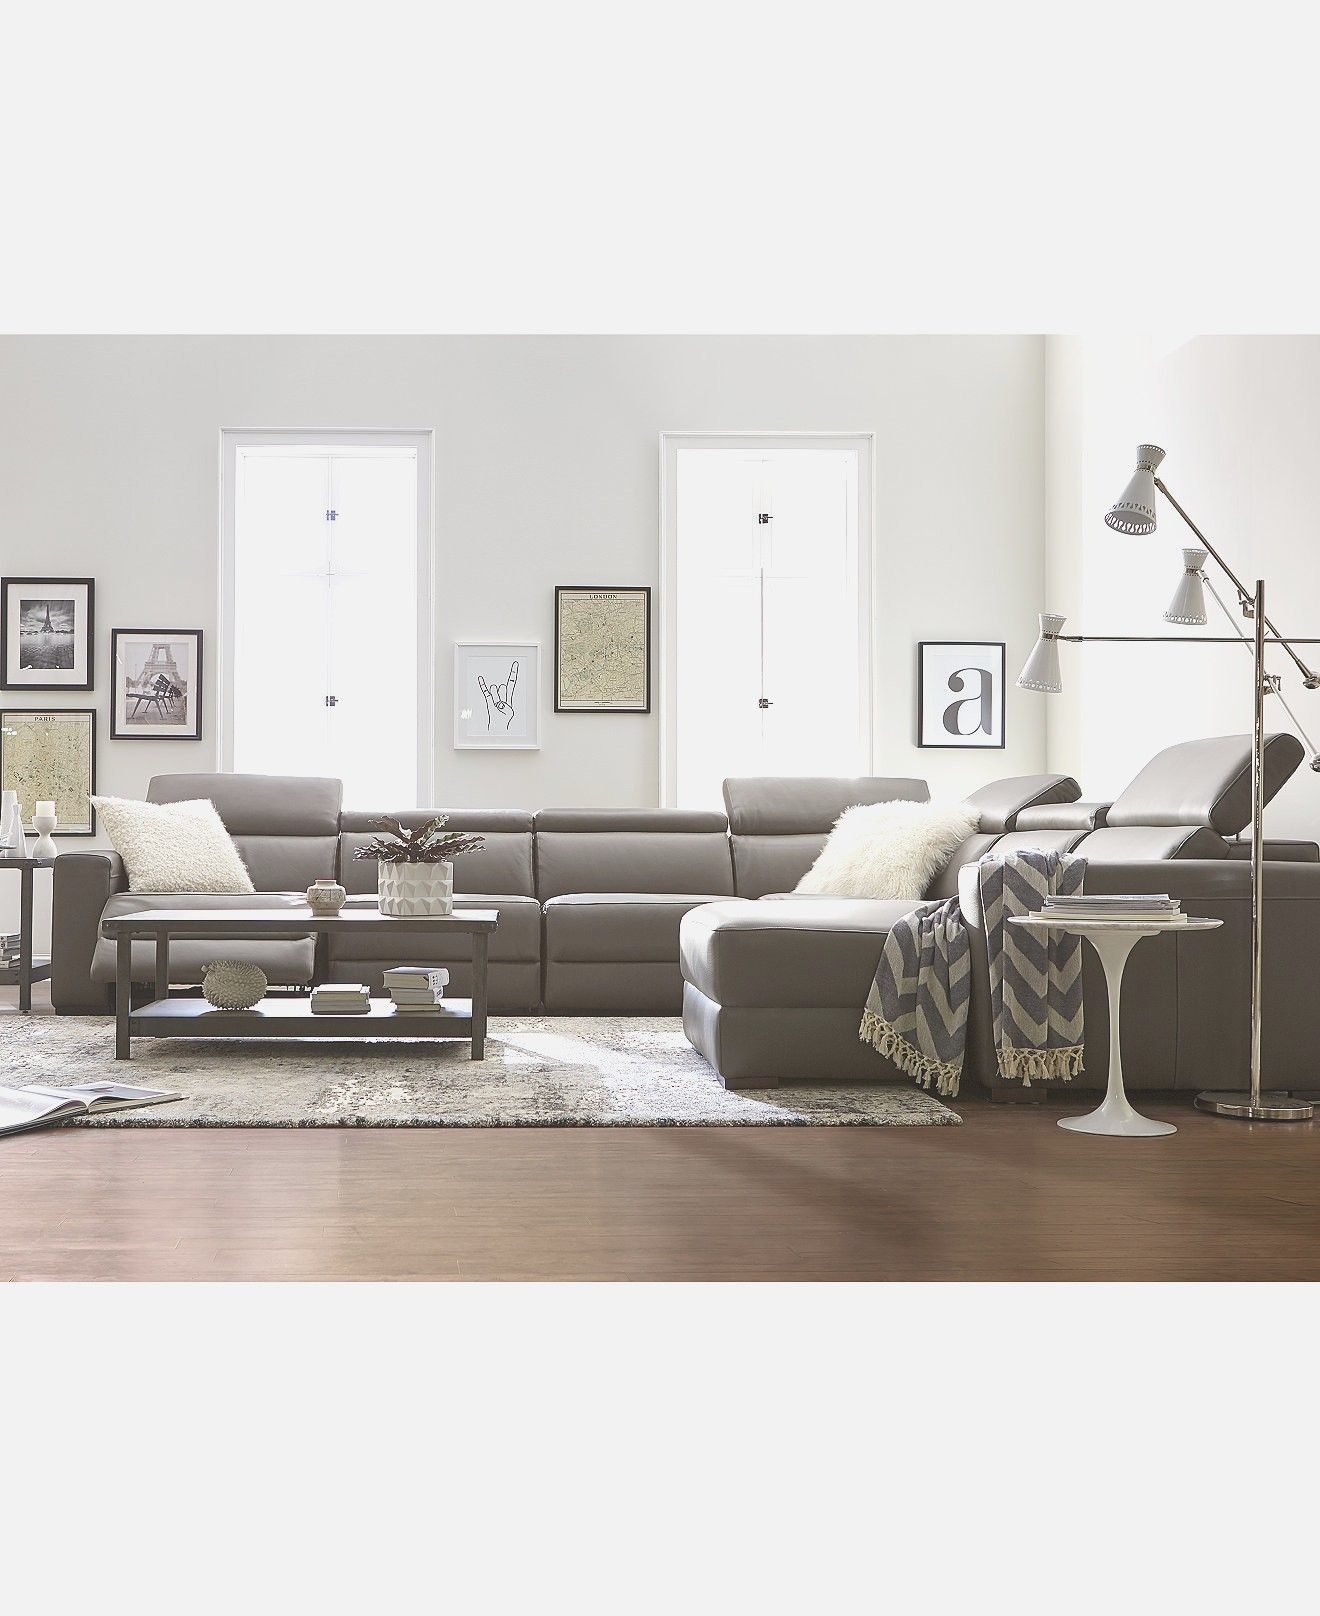 Room And Board Sectional Sofa Metro Sectional Sofa Room And Board